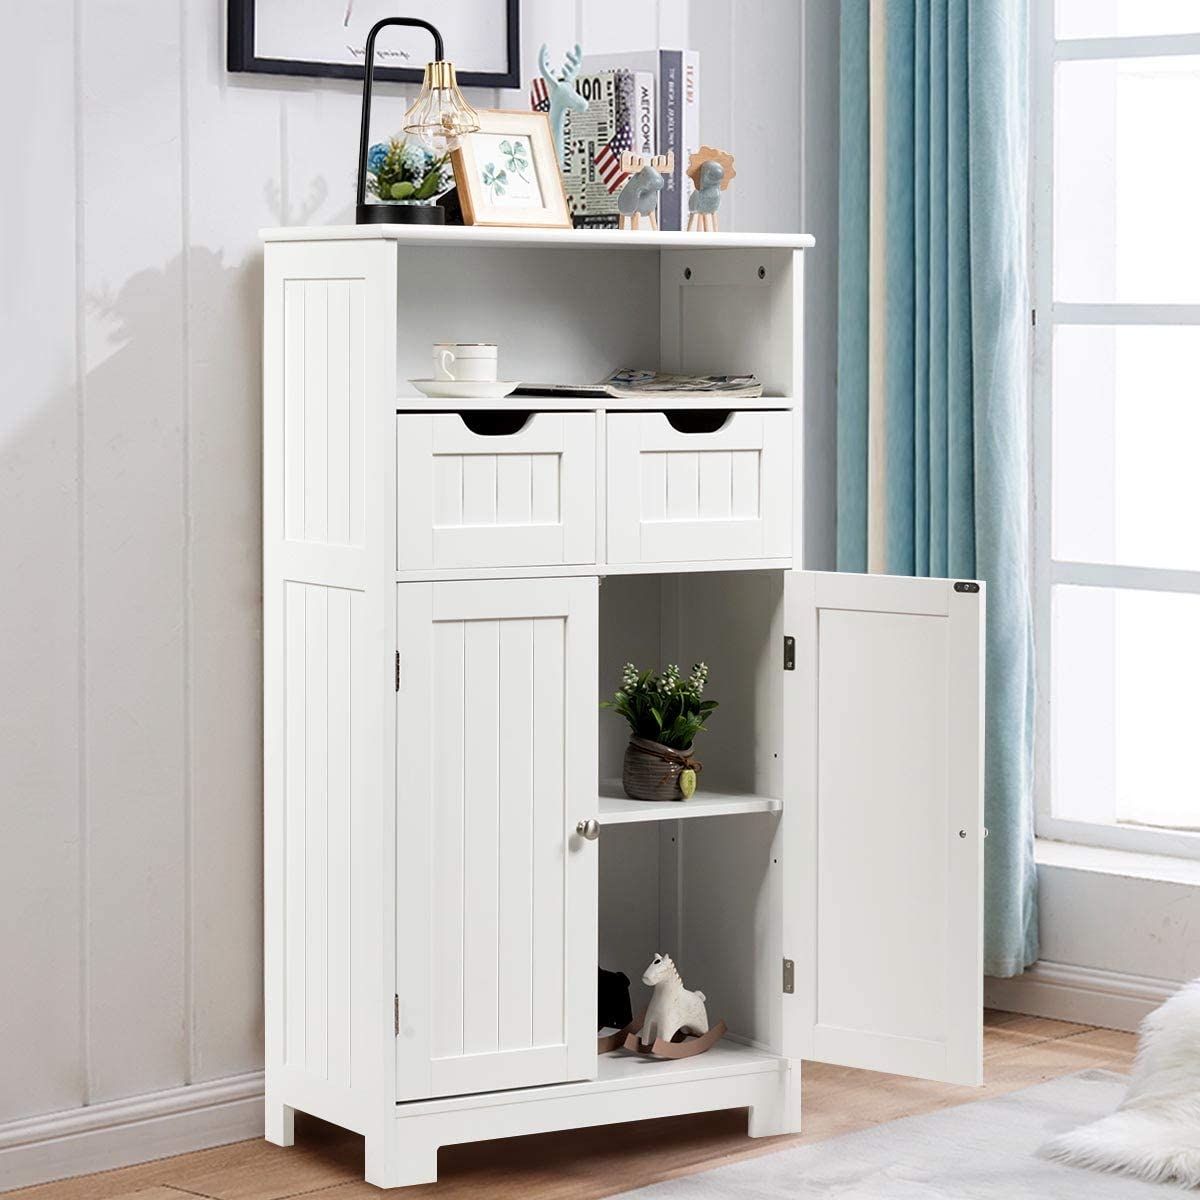 Tangkula Bathroom Floor Cabinet, Wooden Storage Cabinet w Open Shelf, 2 Doors and 2 Drawers, Cabinet for Living Room Bathroom Home Office White